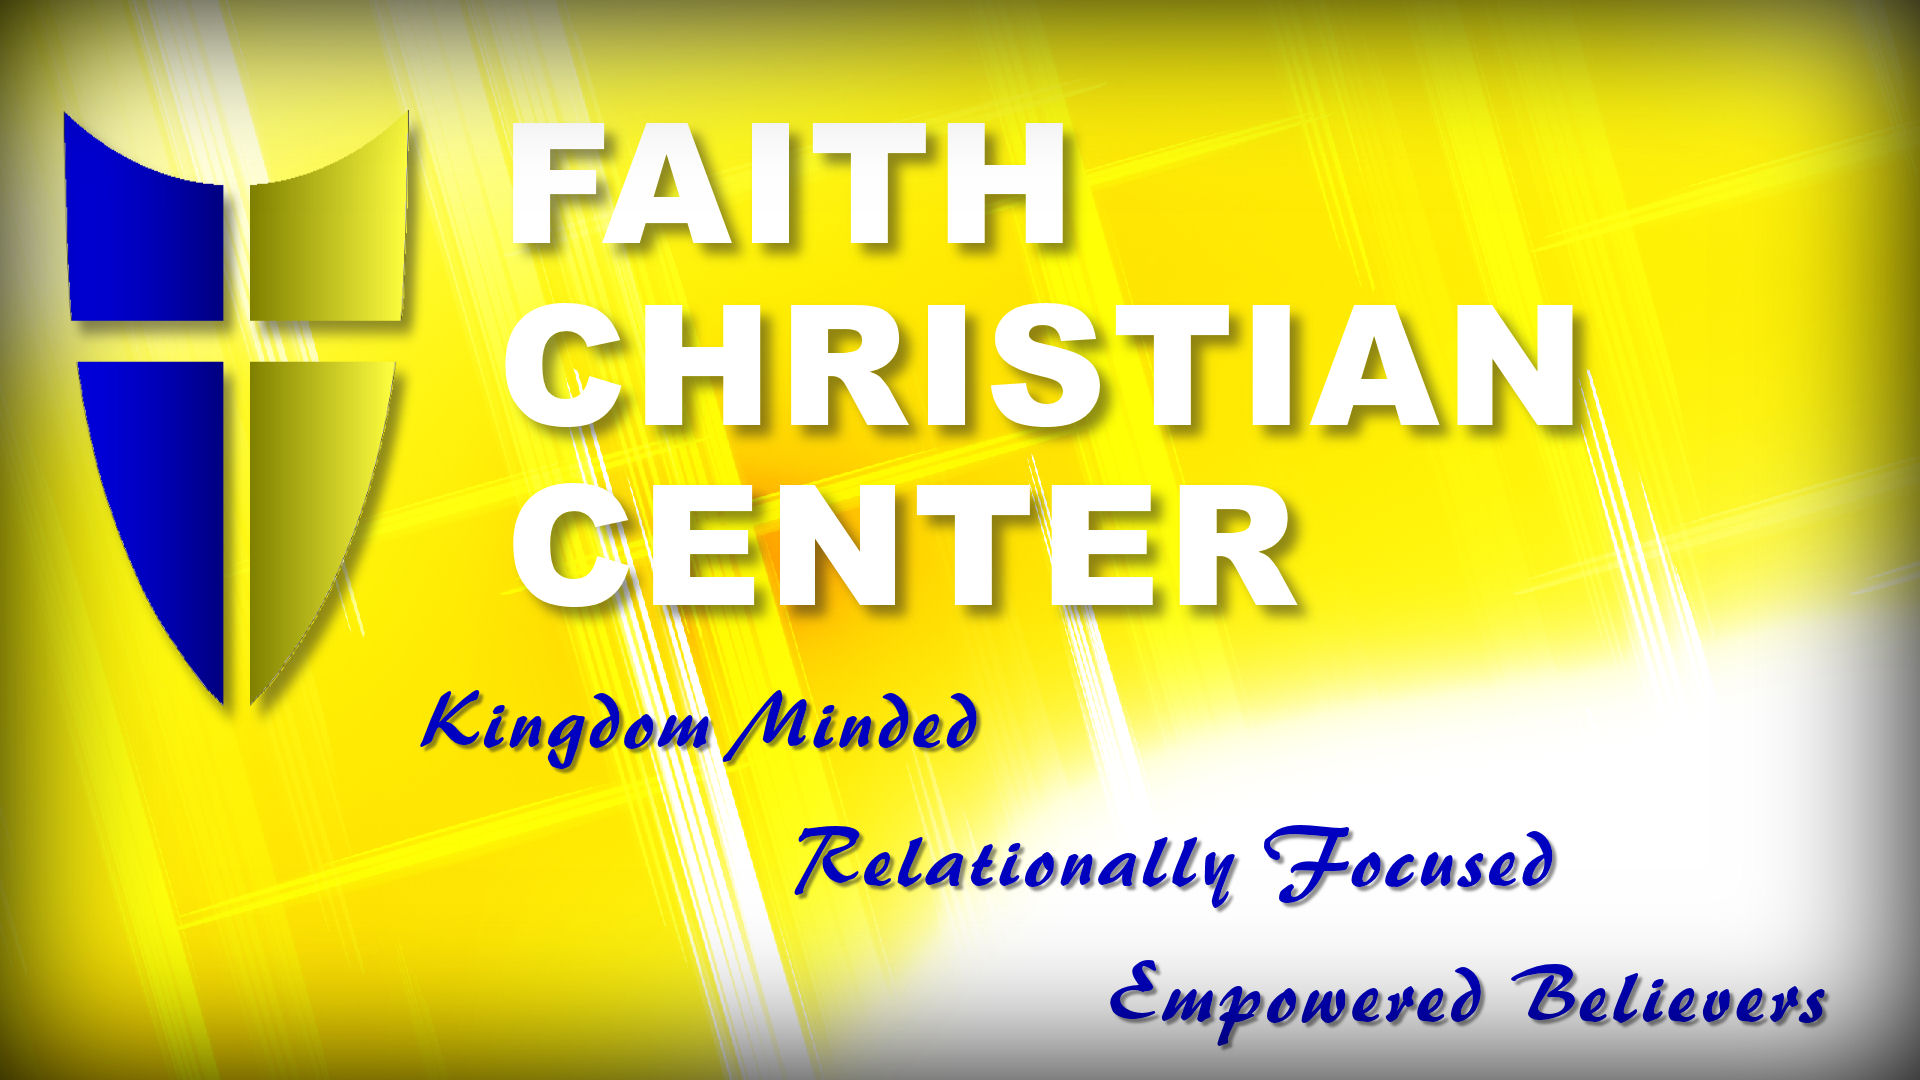 Faith Christian Center Kingdom Minded Relationally Focused Empowered Believers